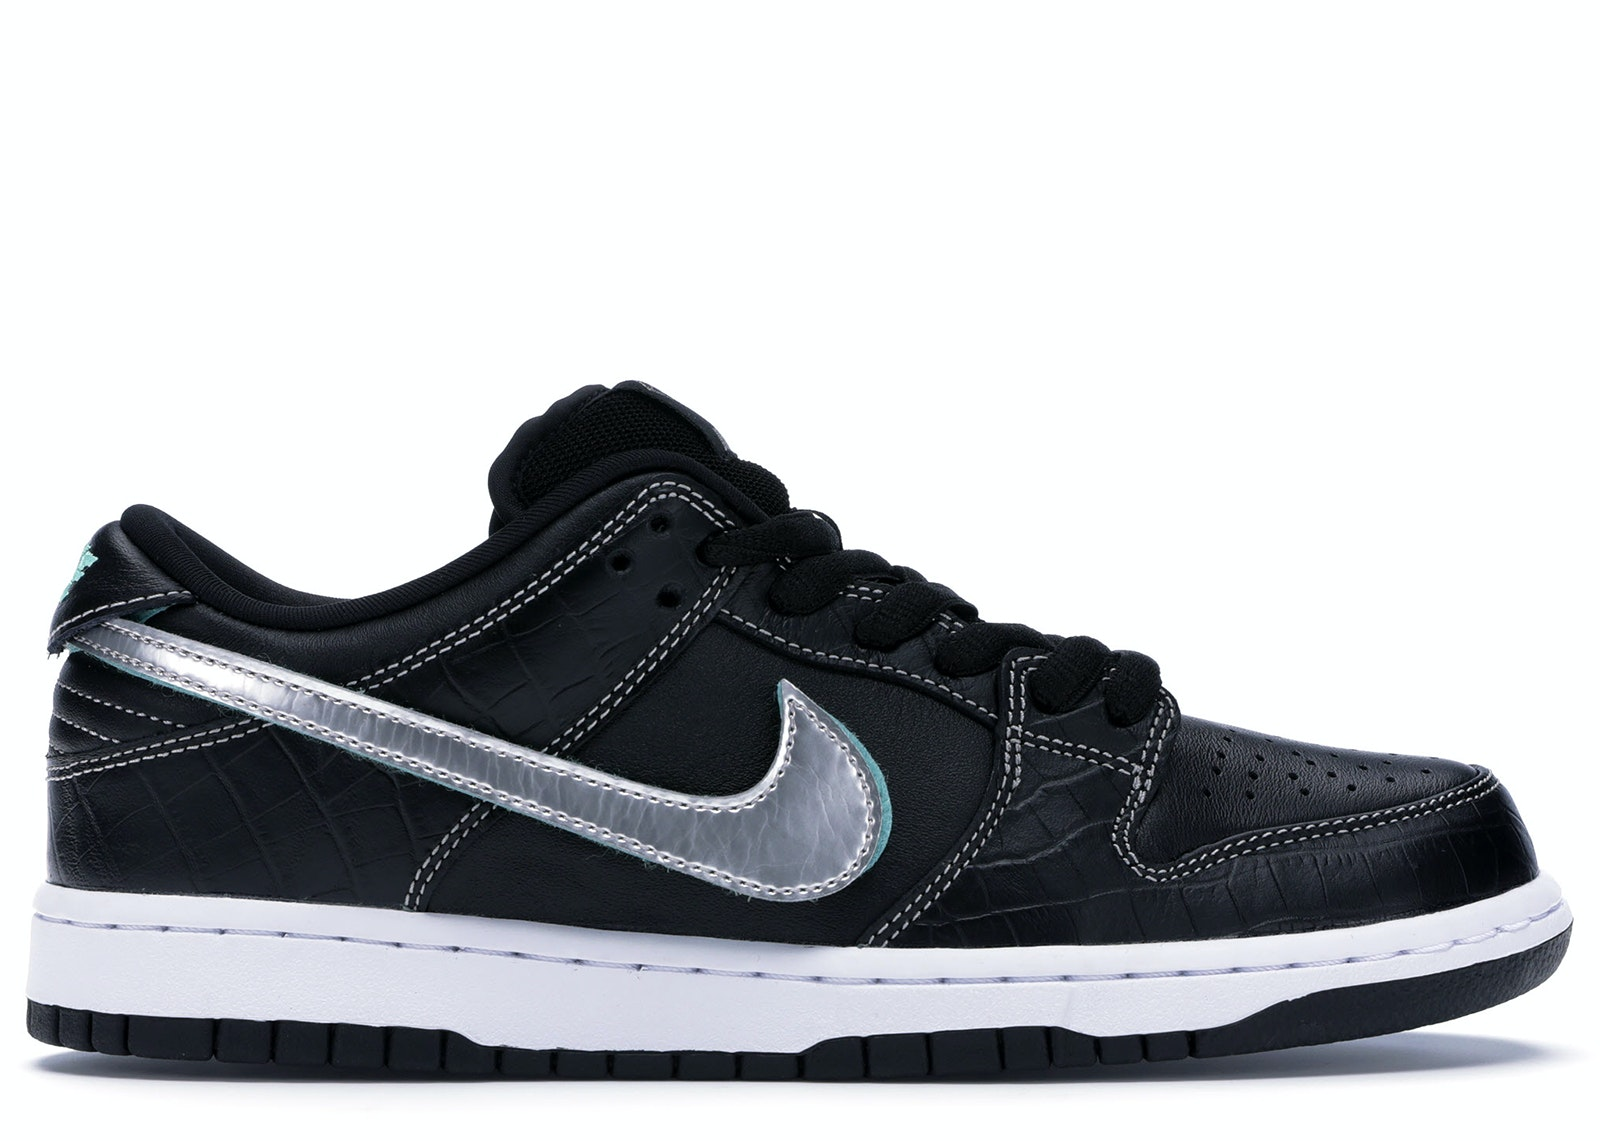 the latest 1437b d4074 Gator Nike Dunk Shoes